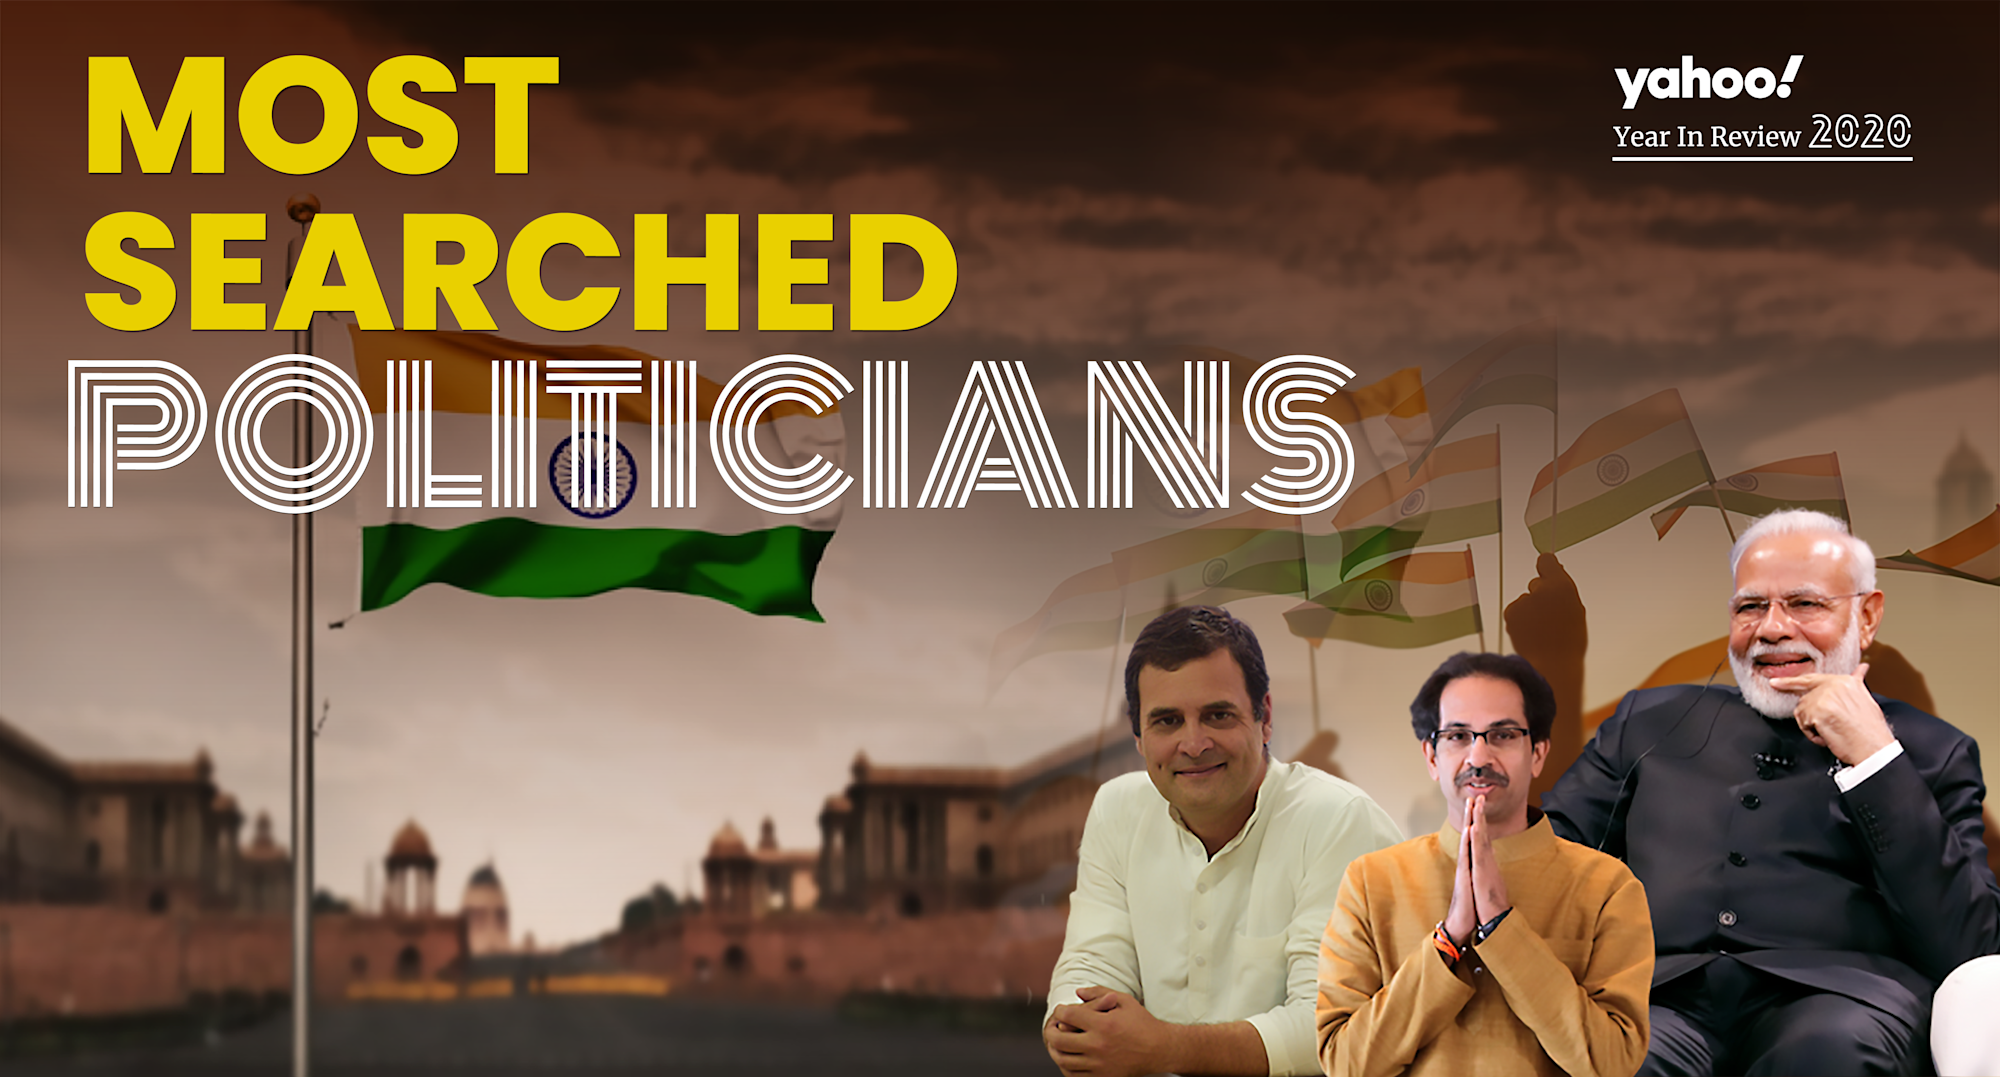 Yahoo India's Top 10 'Most Searched Politicians' of 2020